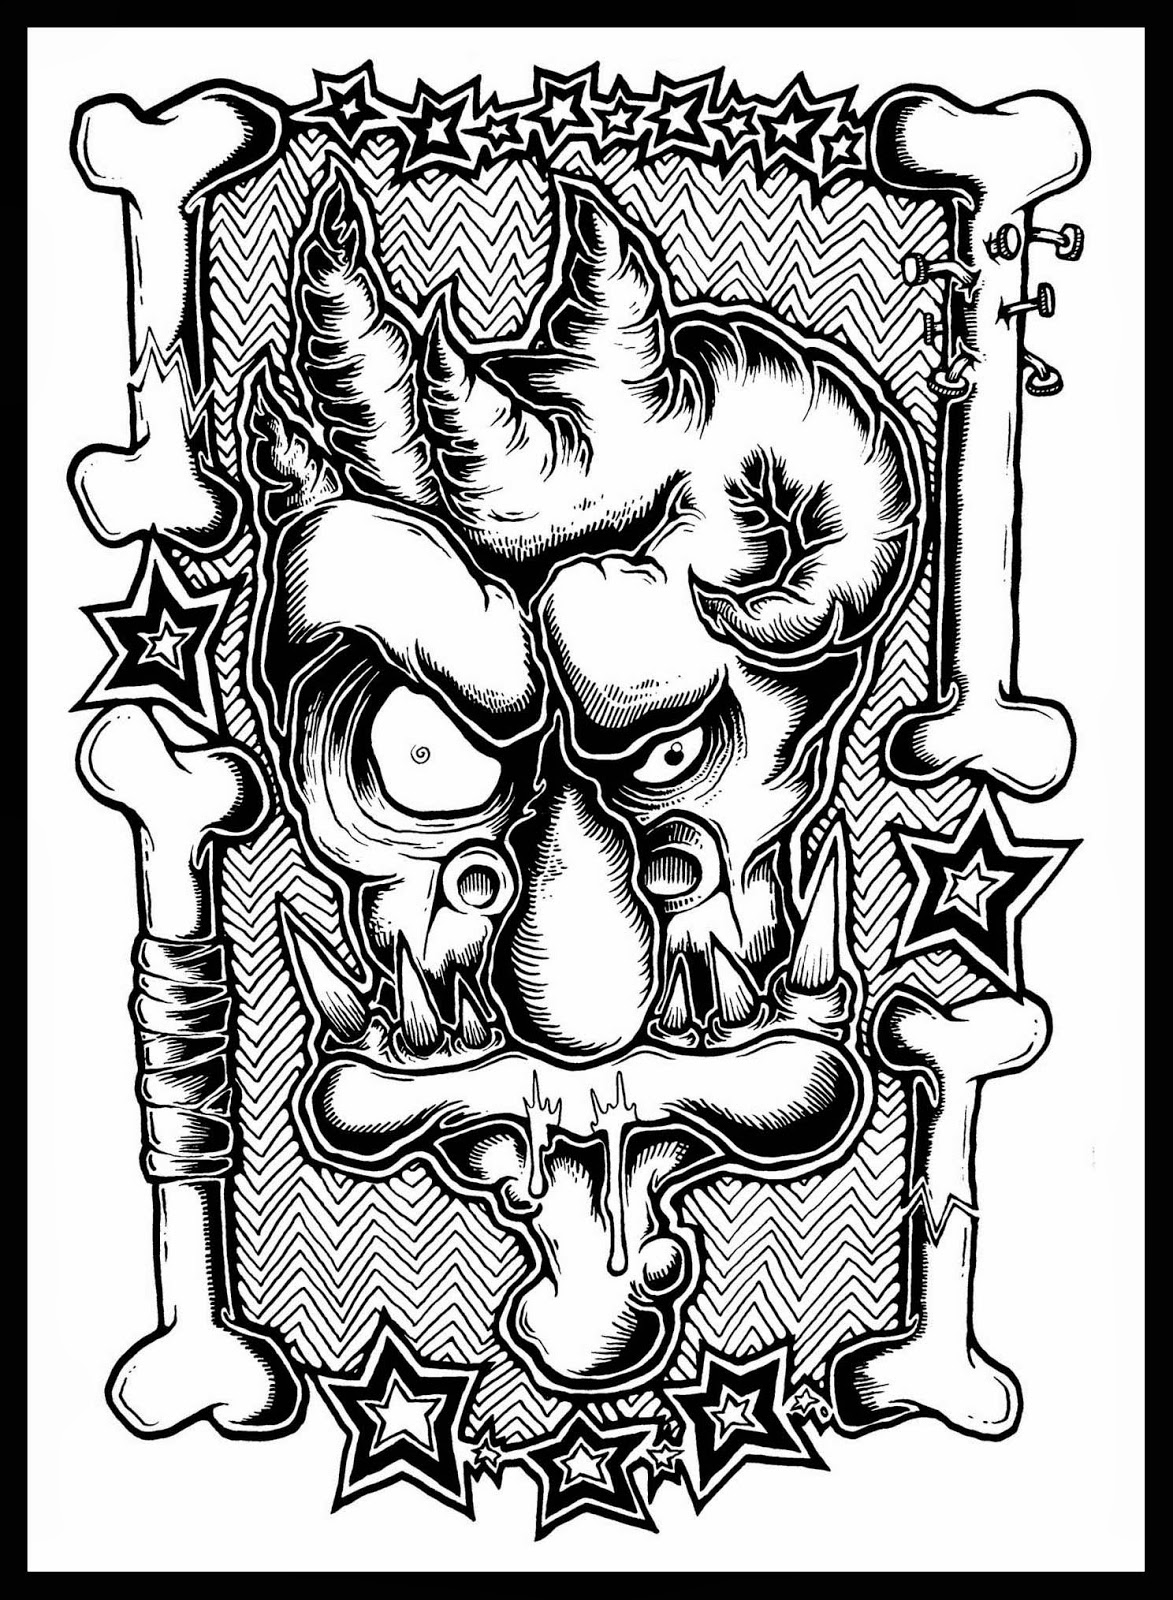 1173x1600 New Drawing Zombie Ghoul Face No. 2 Daryl Hobson Artwork